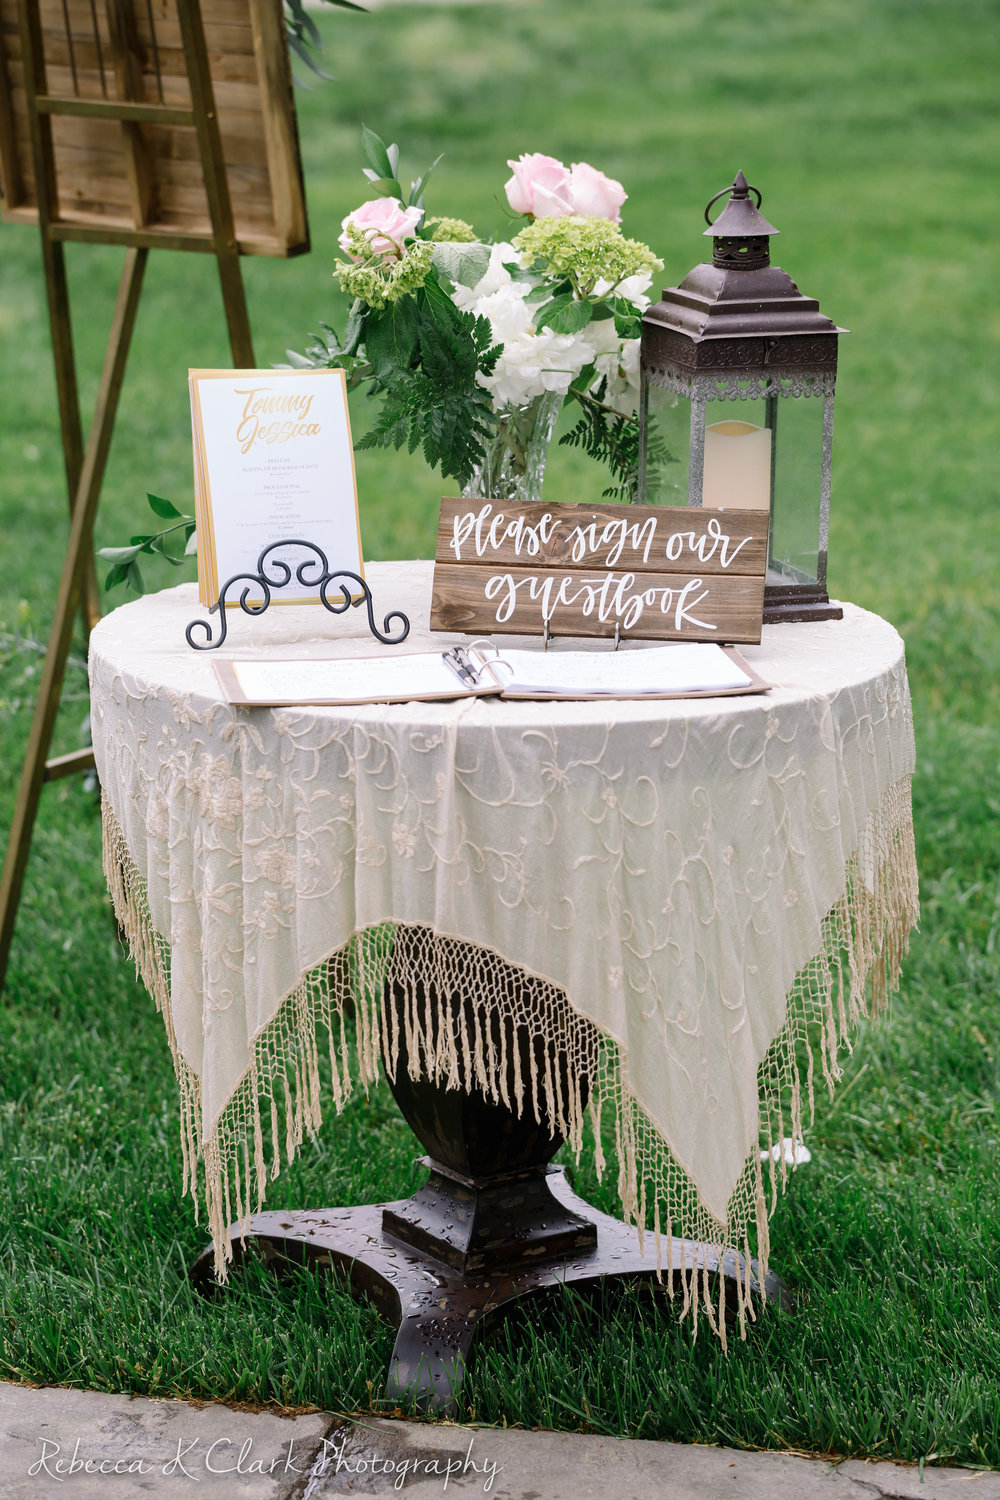 jessica_and_tommy_wedding_images_for_florist_rebeccakclark_photography-4.jpg